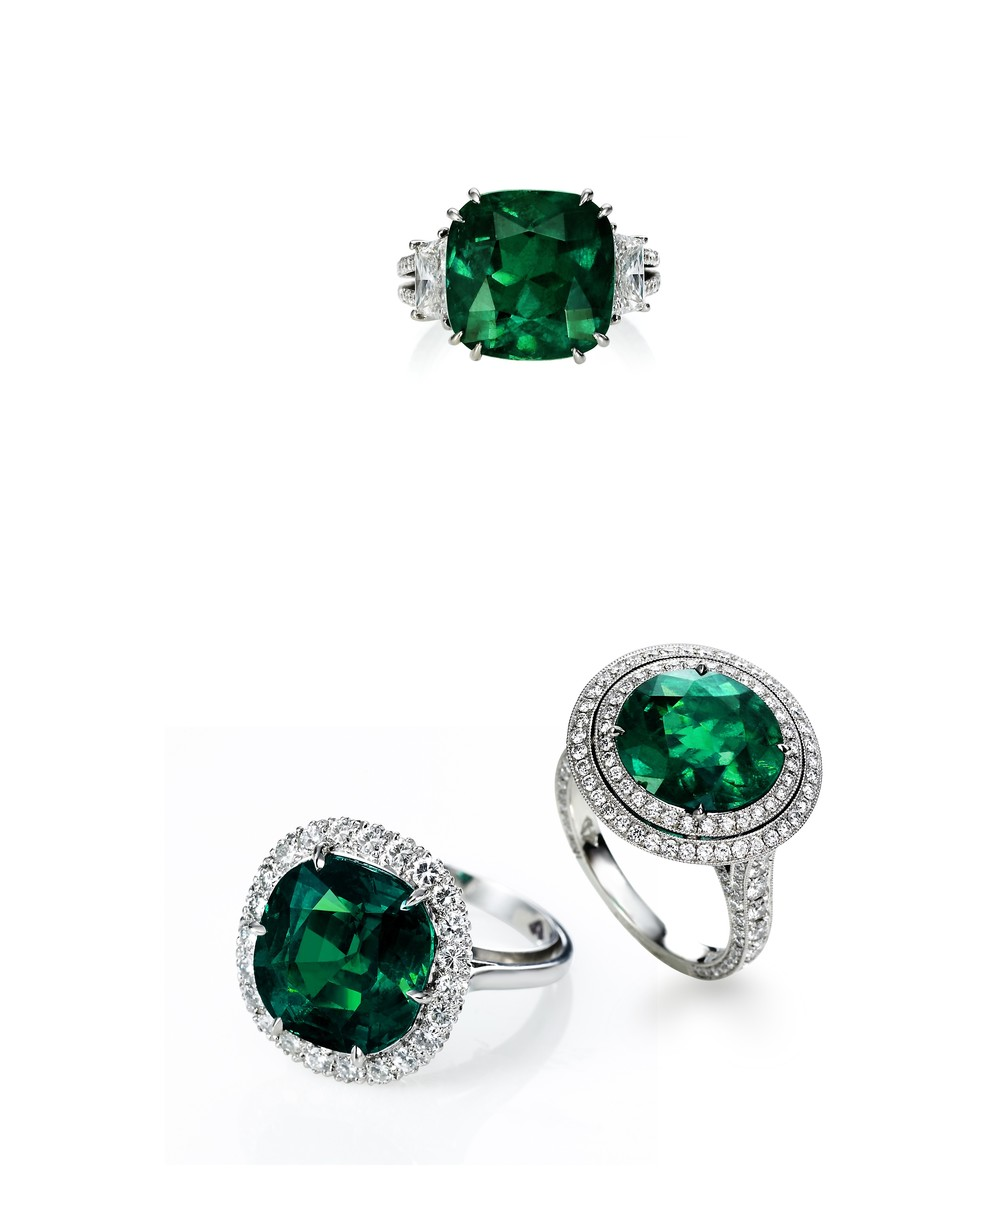 "Emerald & Diamond Rings    From left to right:    Cushion Cut, ""Gem"" Colombian Emerald and Diamond Ring, AGL Certificate   Cushion Cut, ""Super-Gem"" Colombian Emerald and Diamond Ring, AGL Certificate   Custom Made, Round, ""Gem"" Colombian Emerald and Diamond Ring, AGL Certificate"